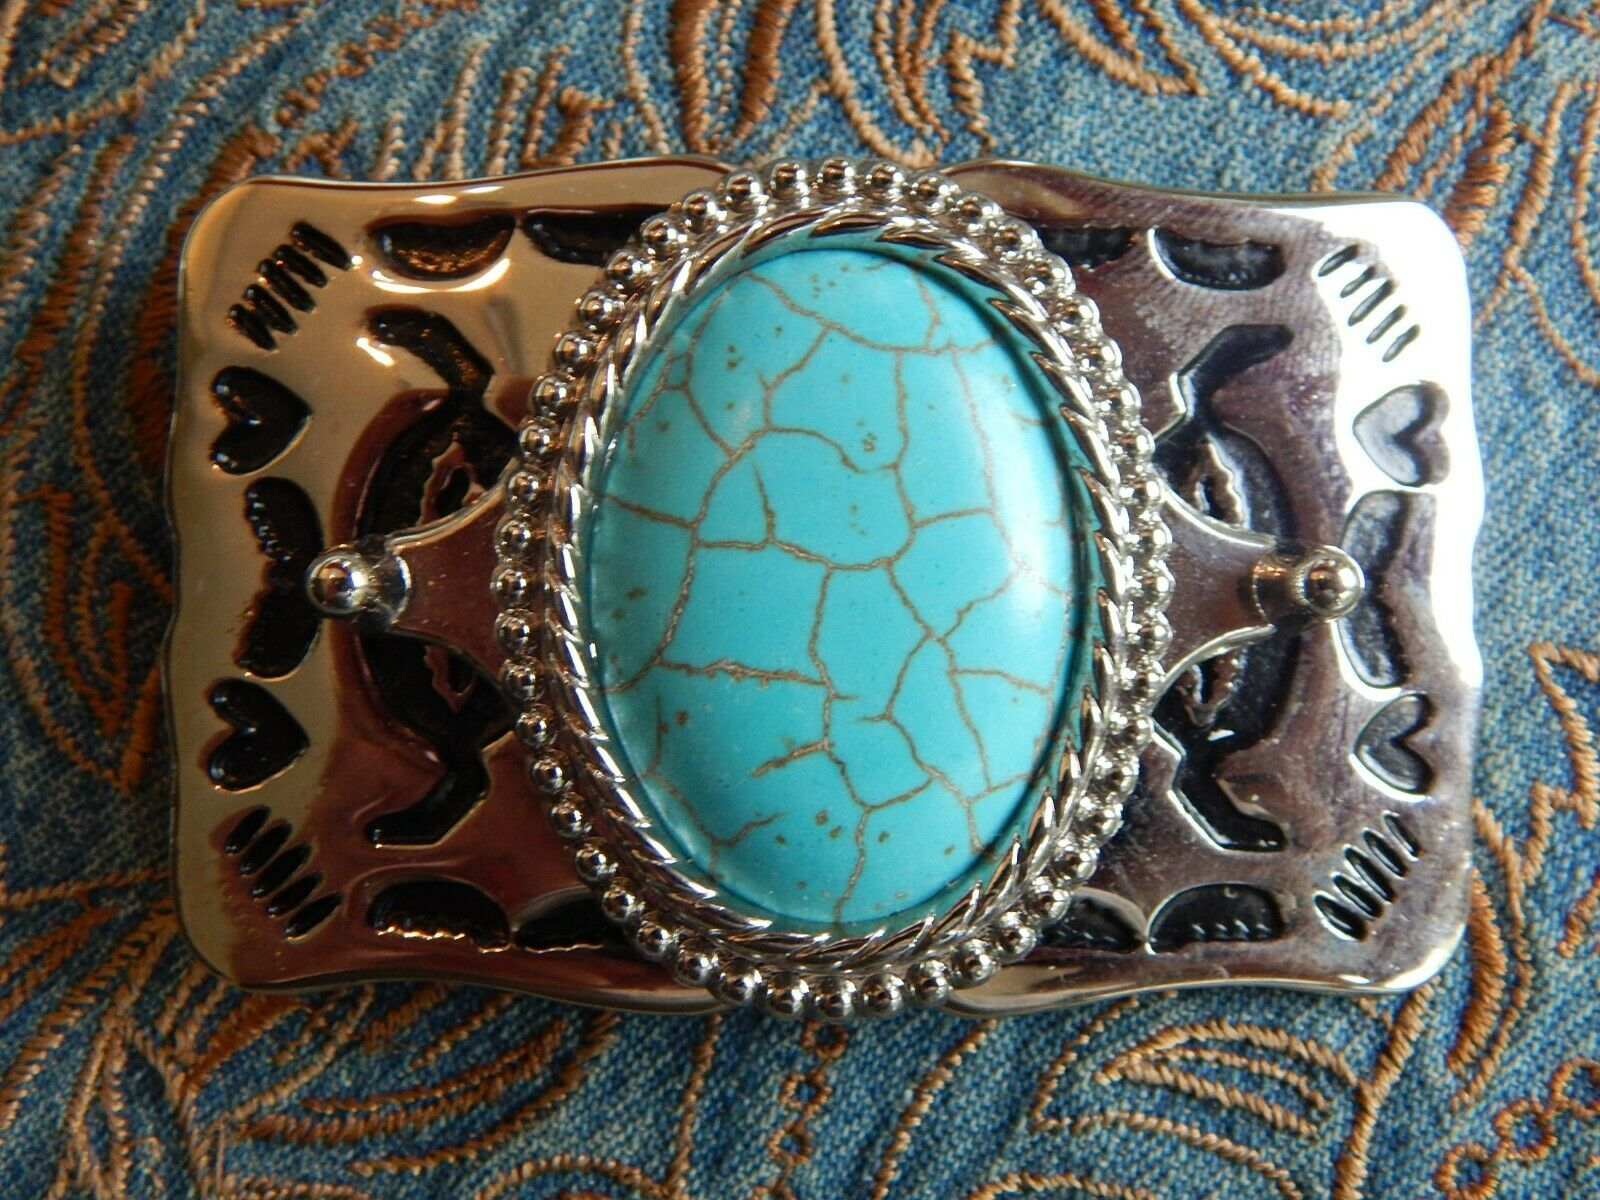 NEW TURQUOISE COLOUR BELT BUCKLE SILVERCOLOUR METAL GOTH WEDDING GROOM